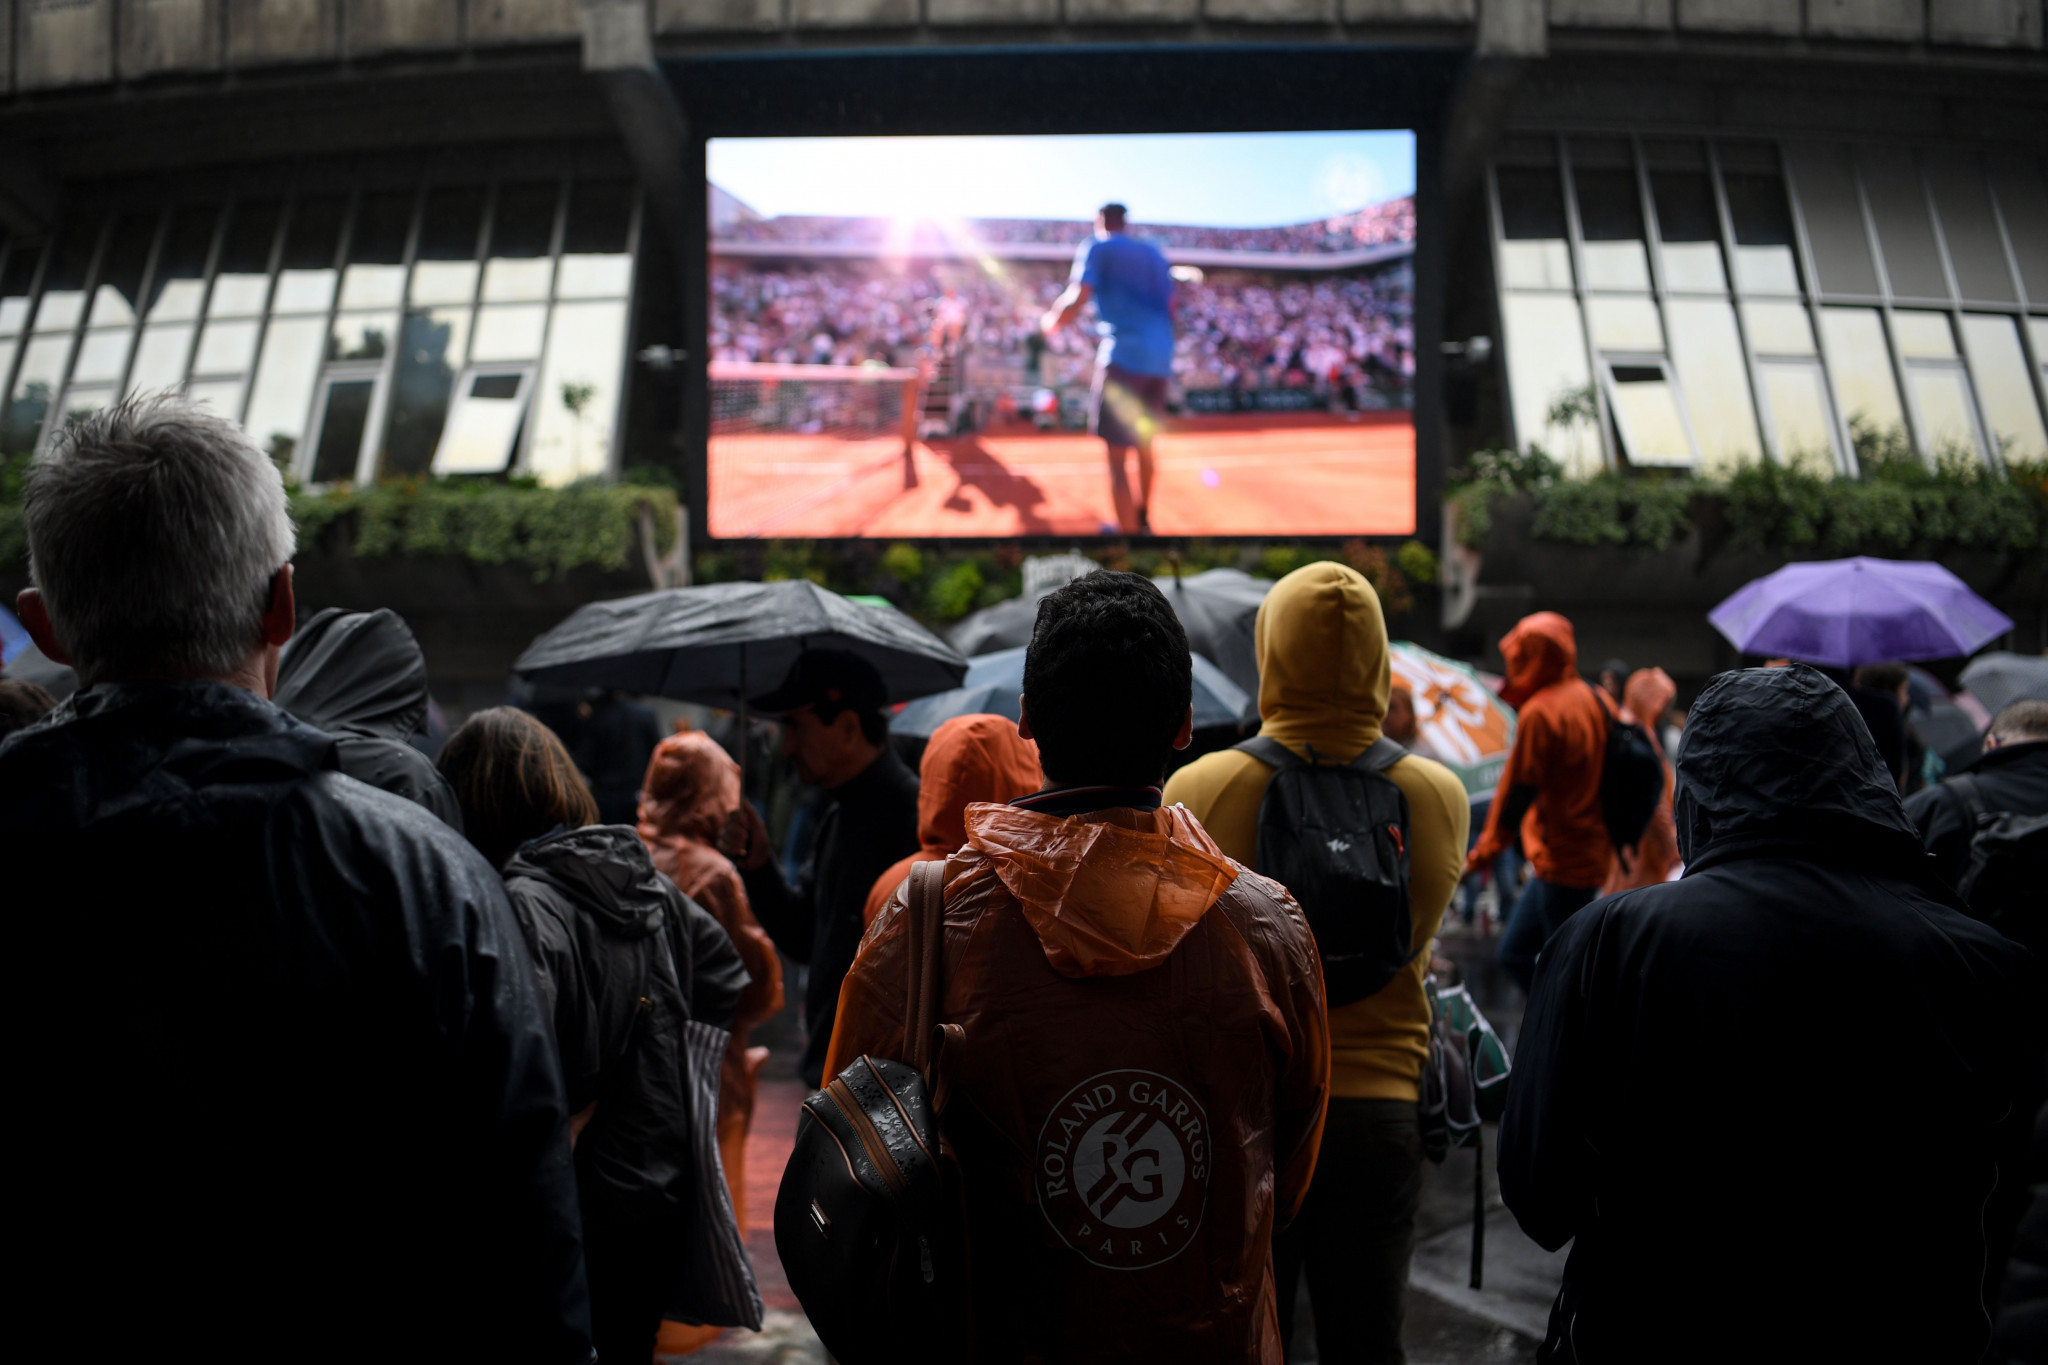 Fans had to settle for replays on the big screens as the rain poured on Roland Garros ©Getty Images